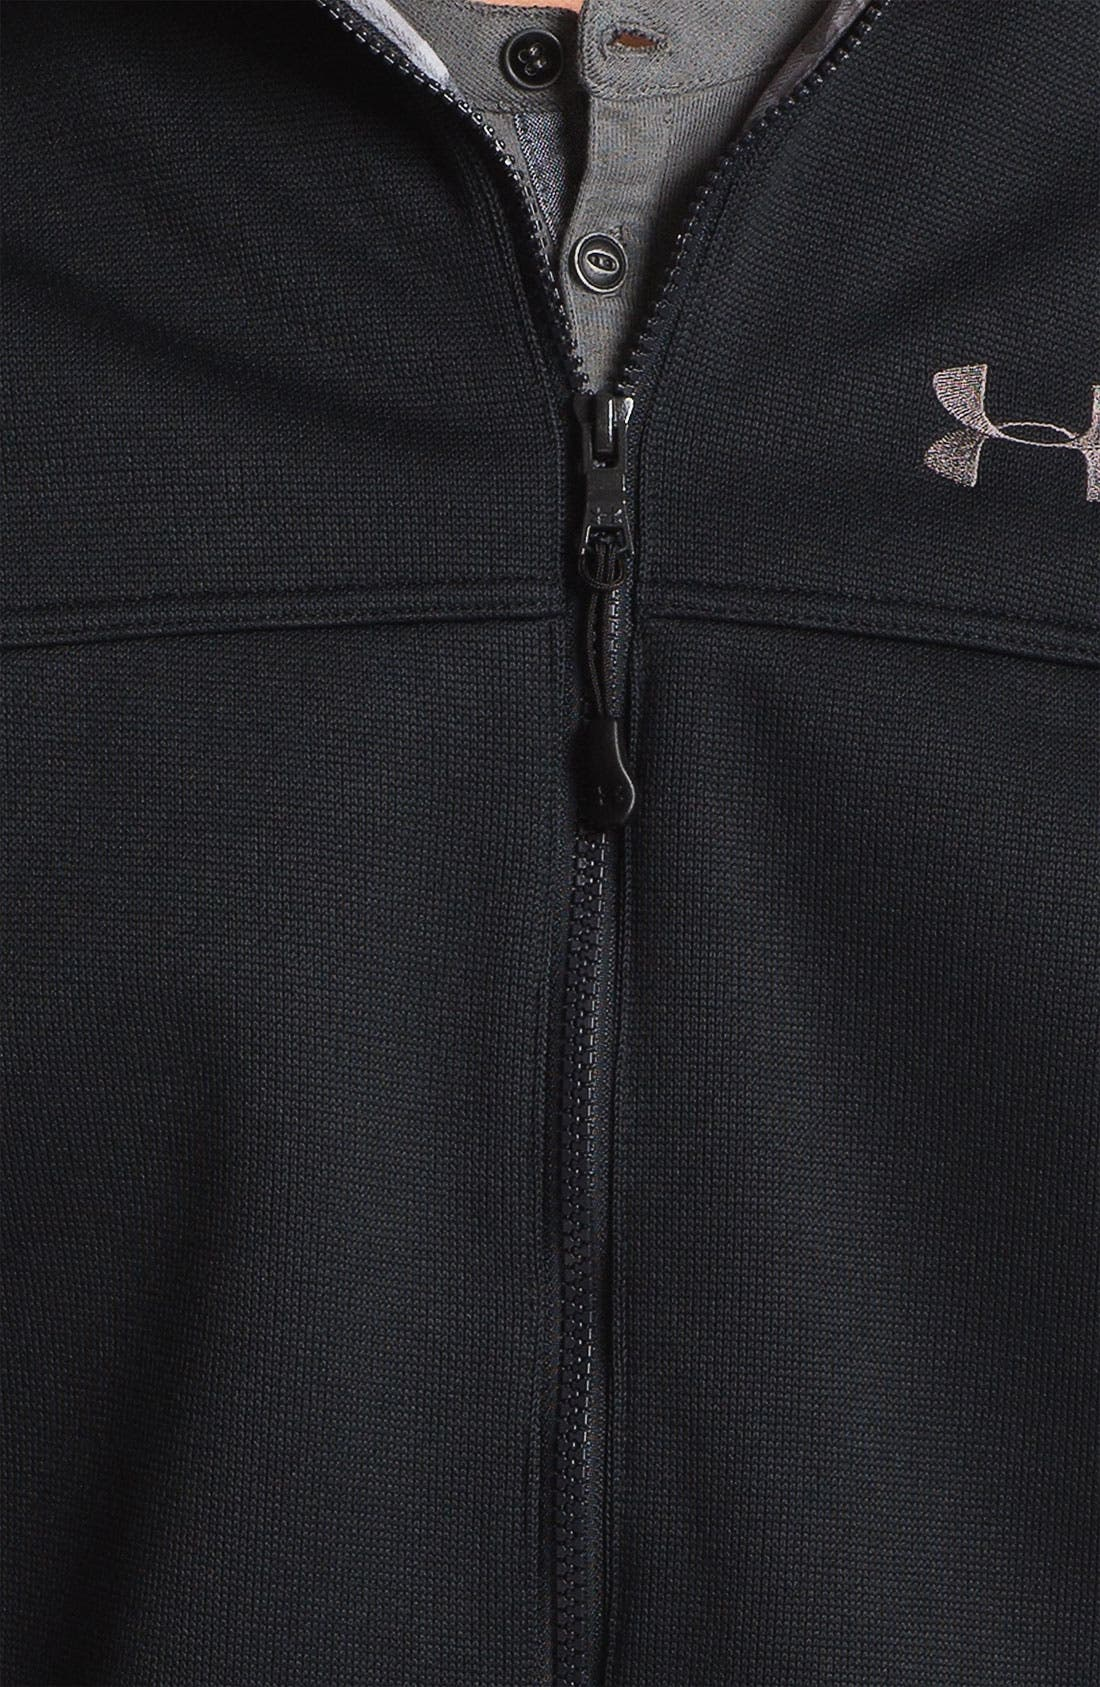 Alternate Image 3  - Under Armour 'Swagger Storm' Wind Jacket